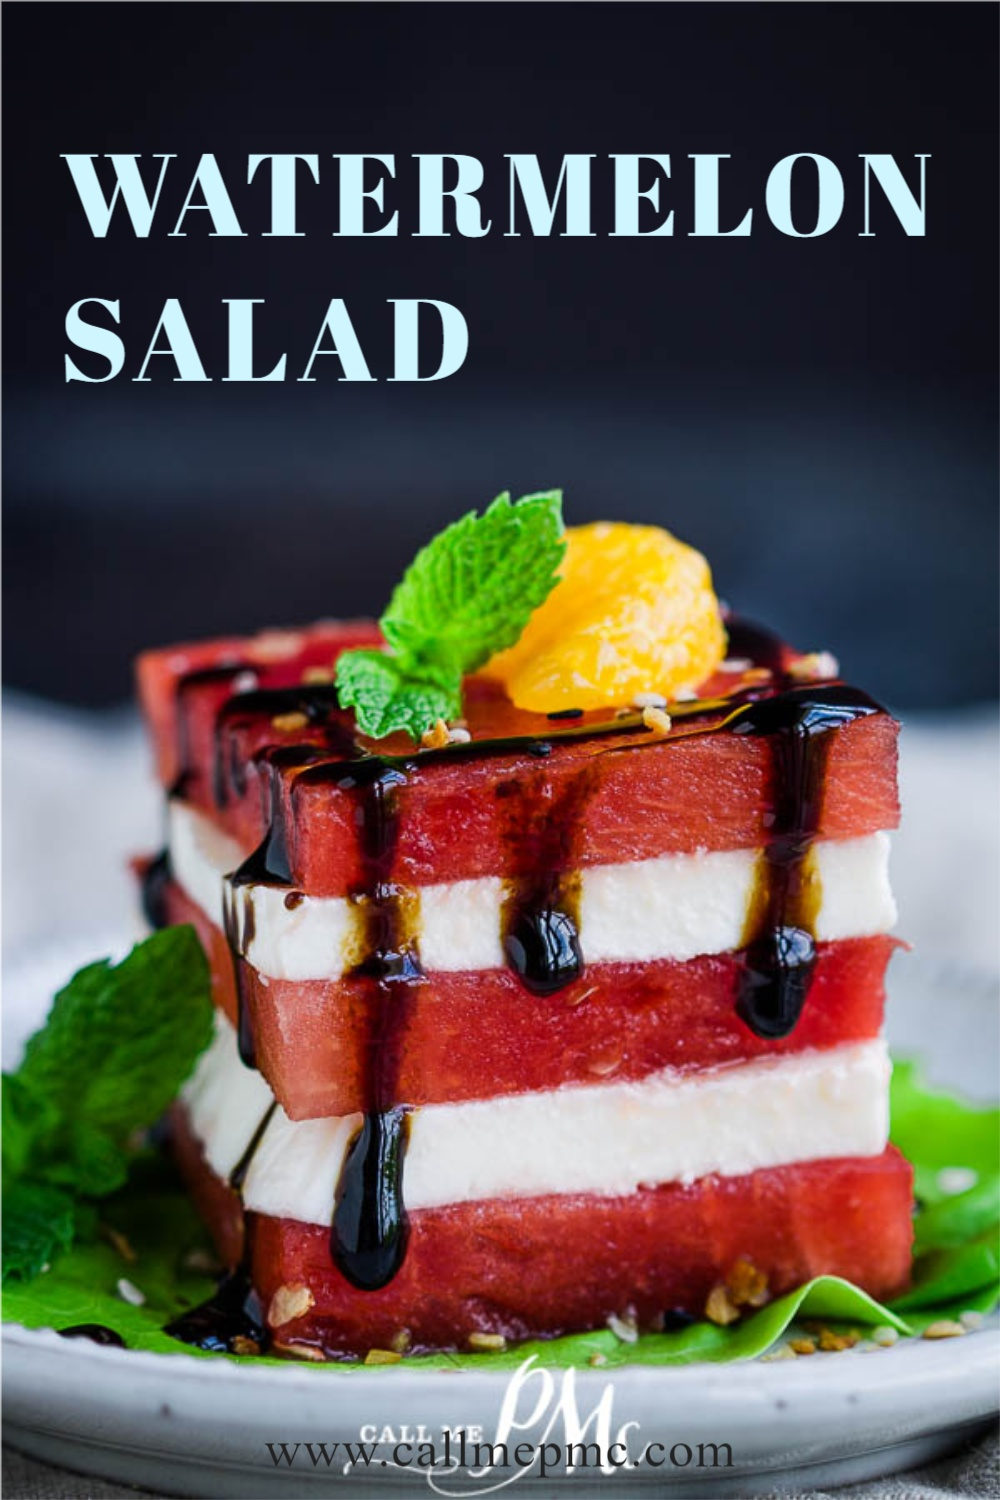 WATERMELON STACK SALAD Easy, healthy, & light watermelon salad with fresh mozzarella and balsamic reduction. It highlights one of the most delicious flavors of summer. #watermelon #salad #mozzarella #recipe #callmepmc